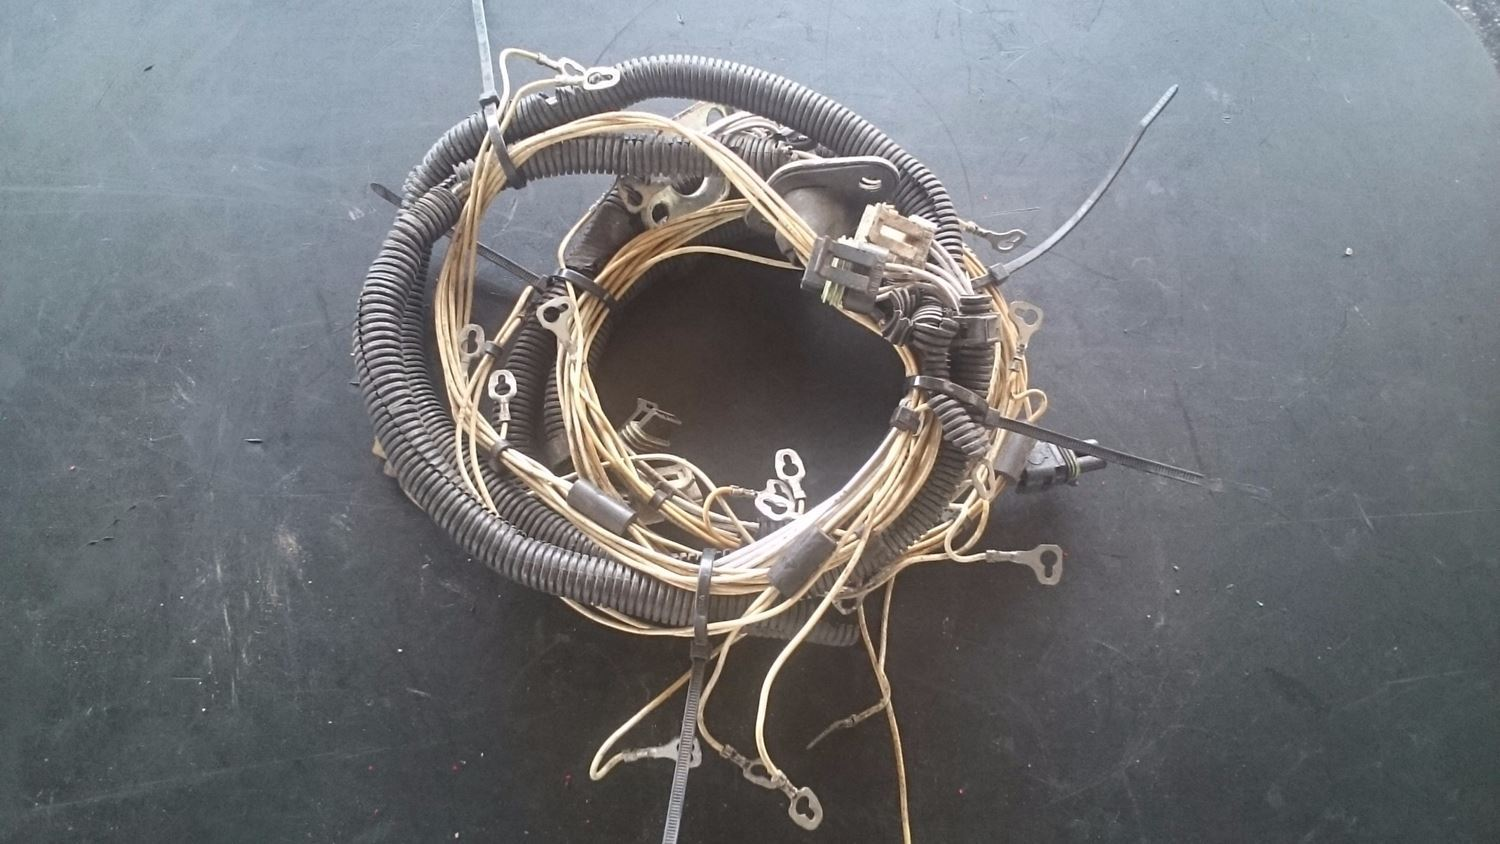 Detroit 60 Injector Wiring Harness Electrical Diagrams 1996 Freightliner Series Diagram Harnesses New And Used Parts American Truck Chrome 2003 Cadillac Cts